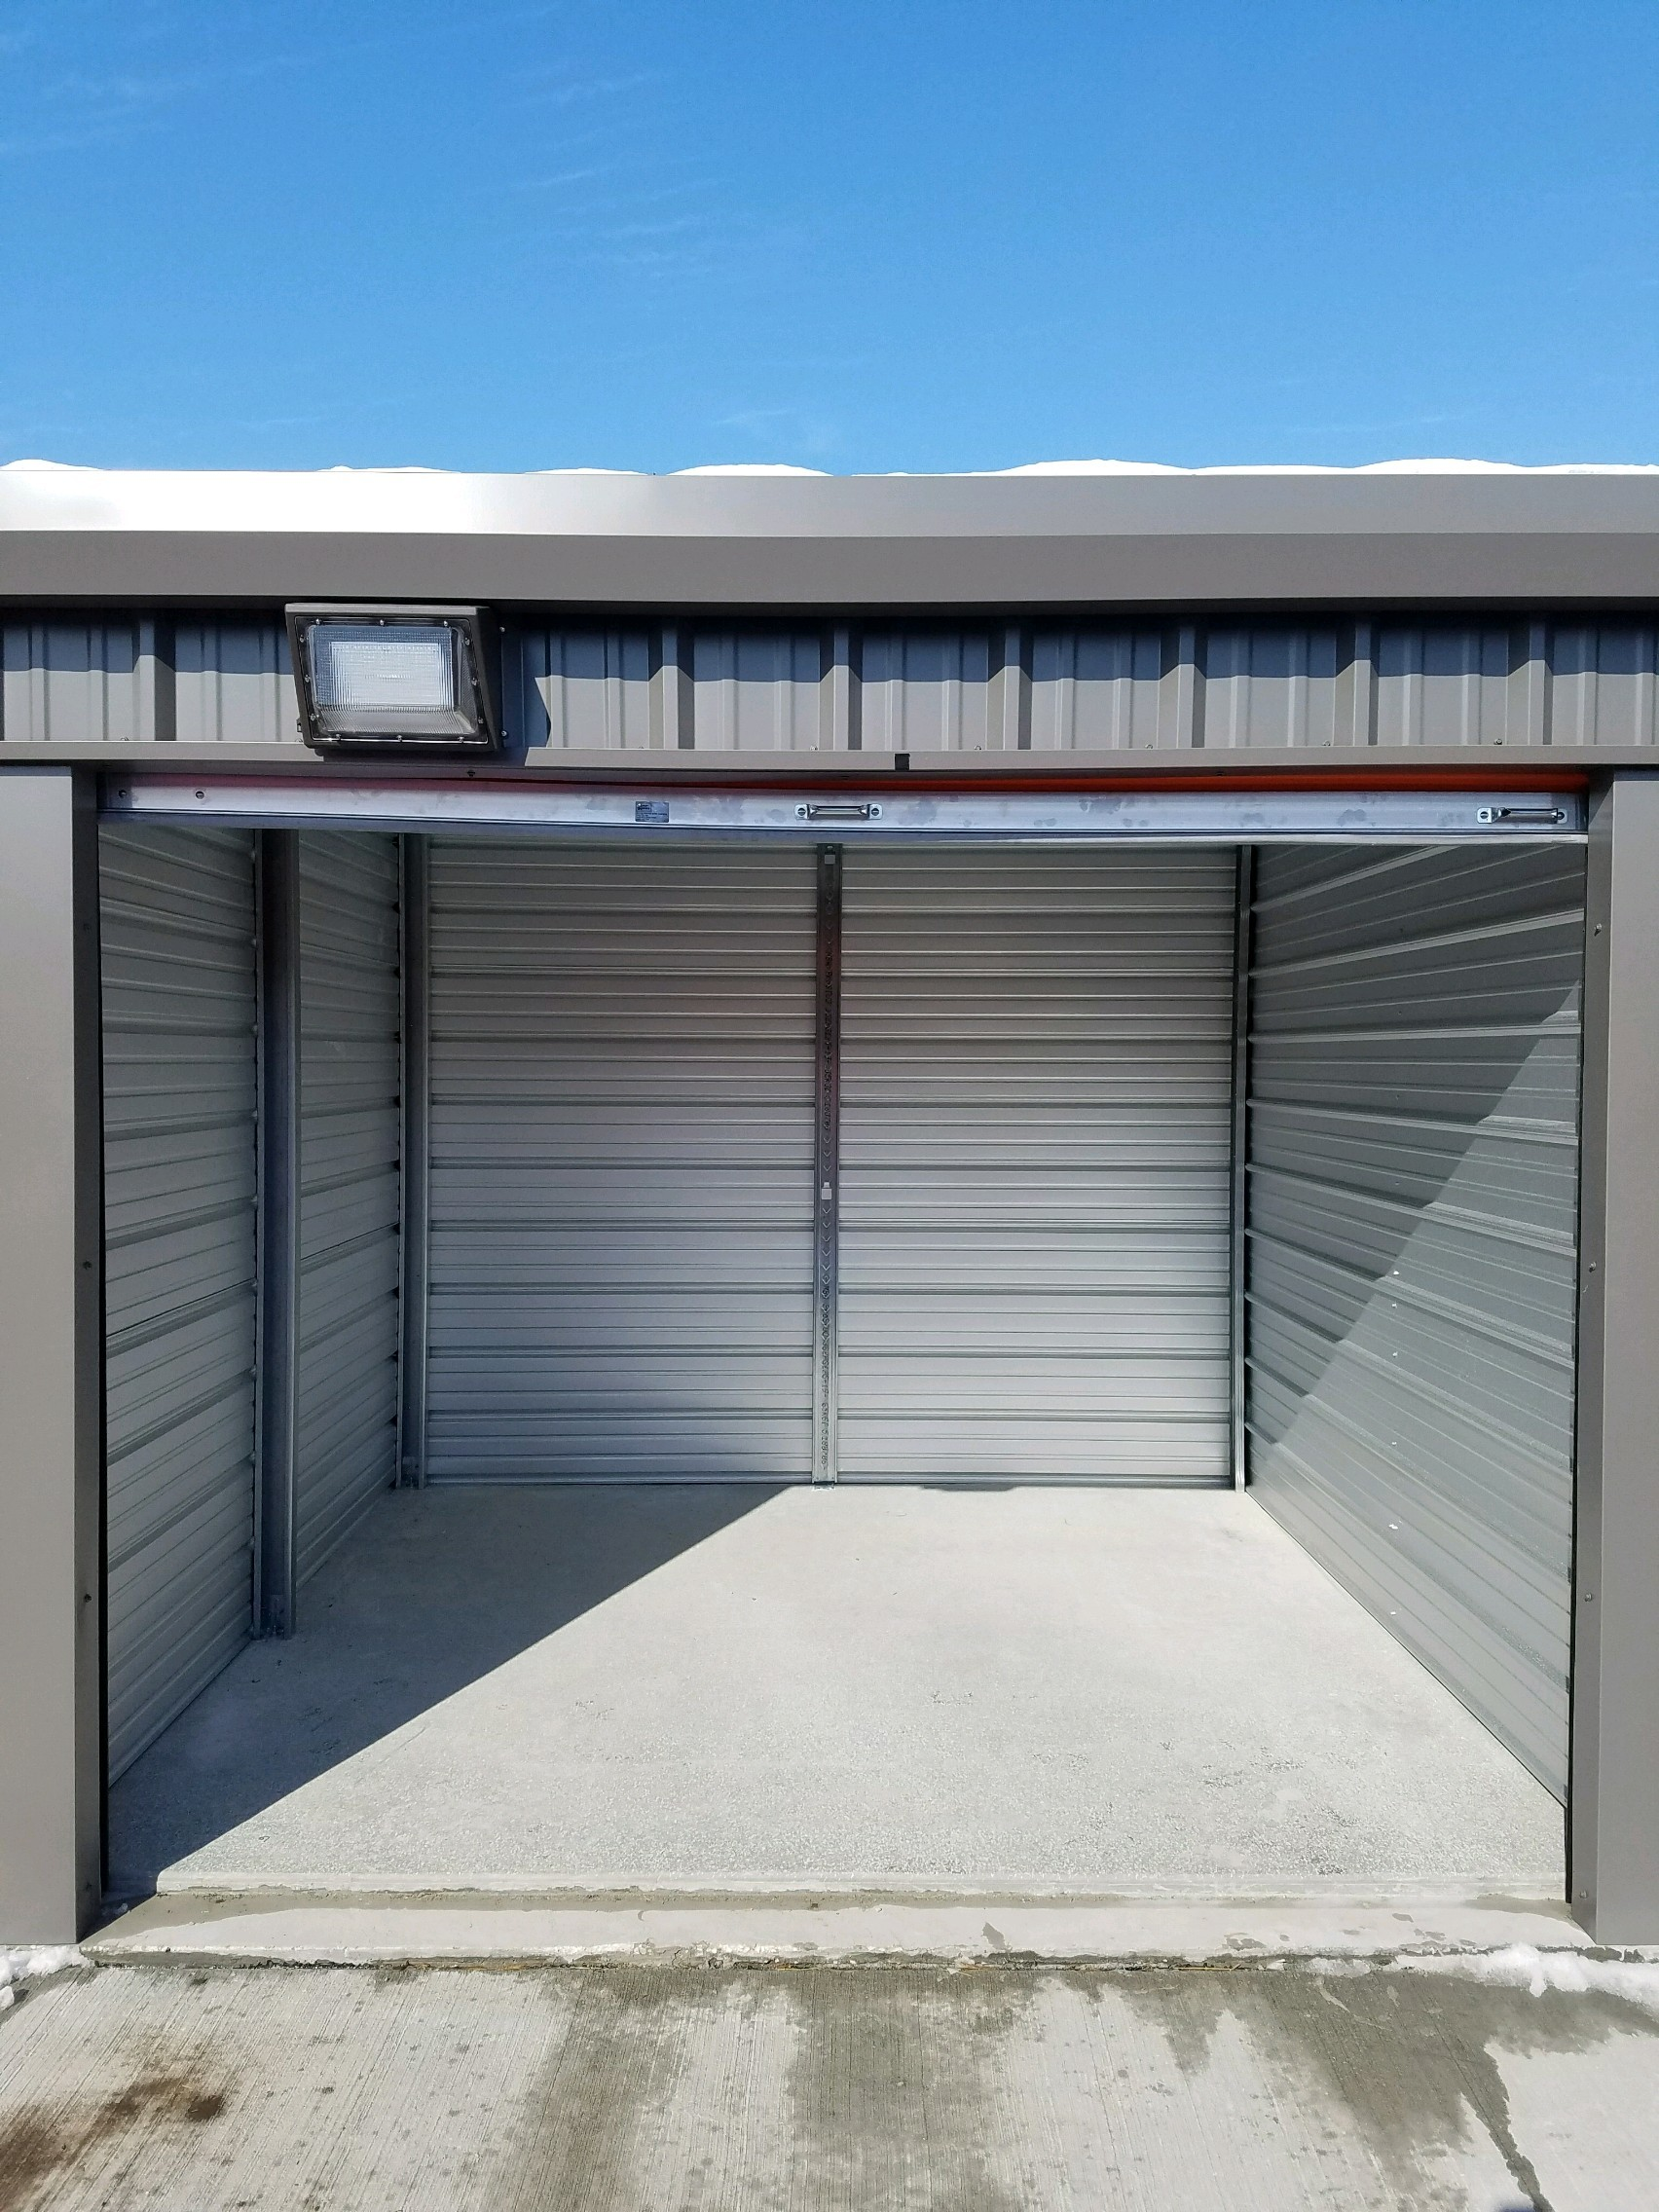 10' x 10' Self Storage Unit in Solon, Iowa at V' s Self Storage